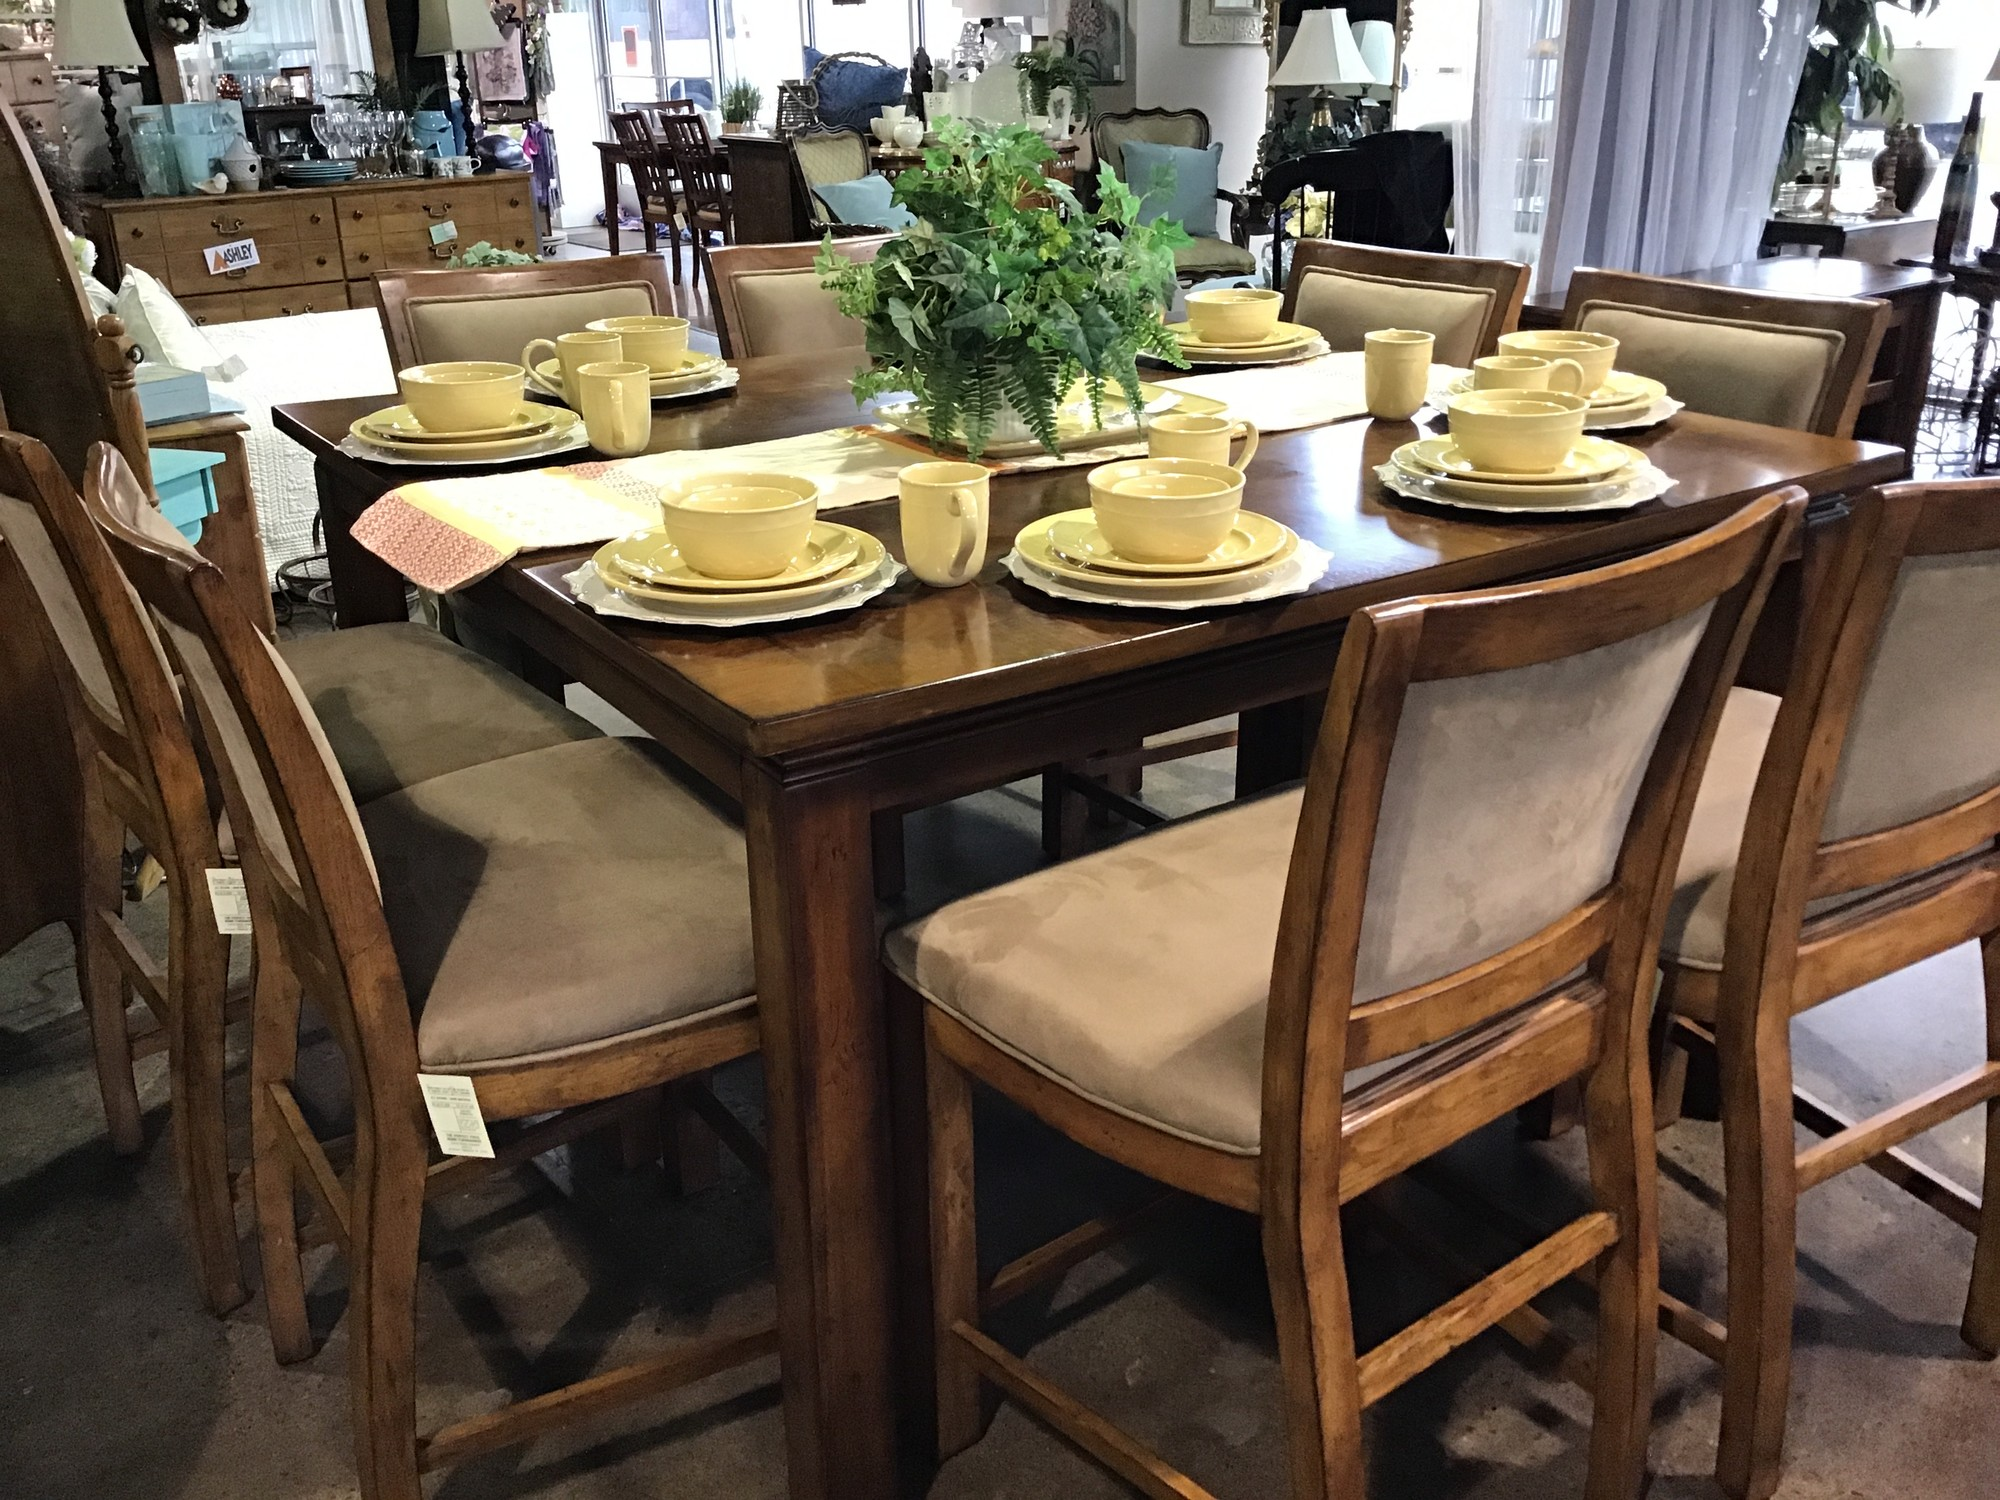 "This large counter-height table comes with 8 large upholstered chairs and 1 - 18"" leaf that makes the table square when inserted. The chairs are upholstered in a light tan/taupe and are quite wide.<br /> Dimensions without leaf are 60"" x 42"" x 36""<br /> Dimensions with leaf are 60"" x 60"" x 36"""